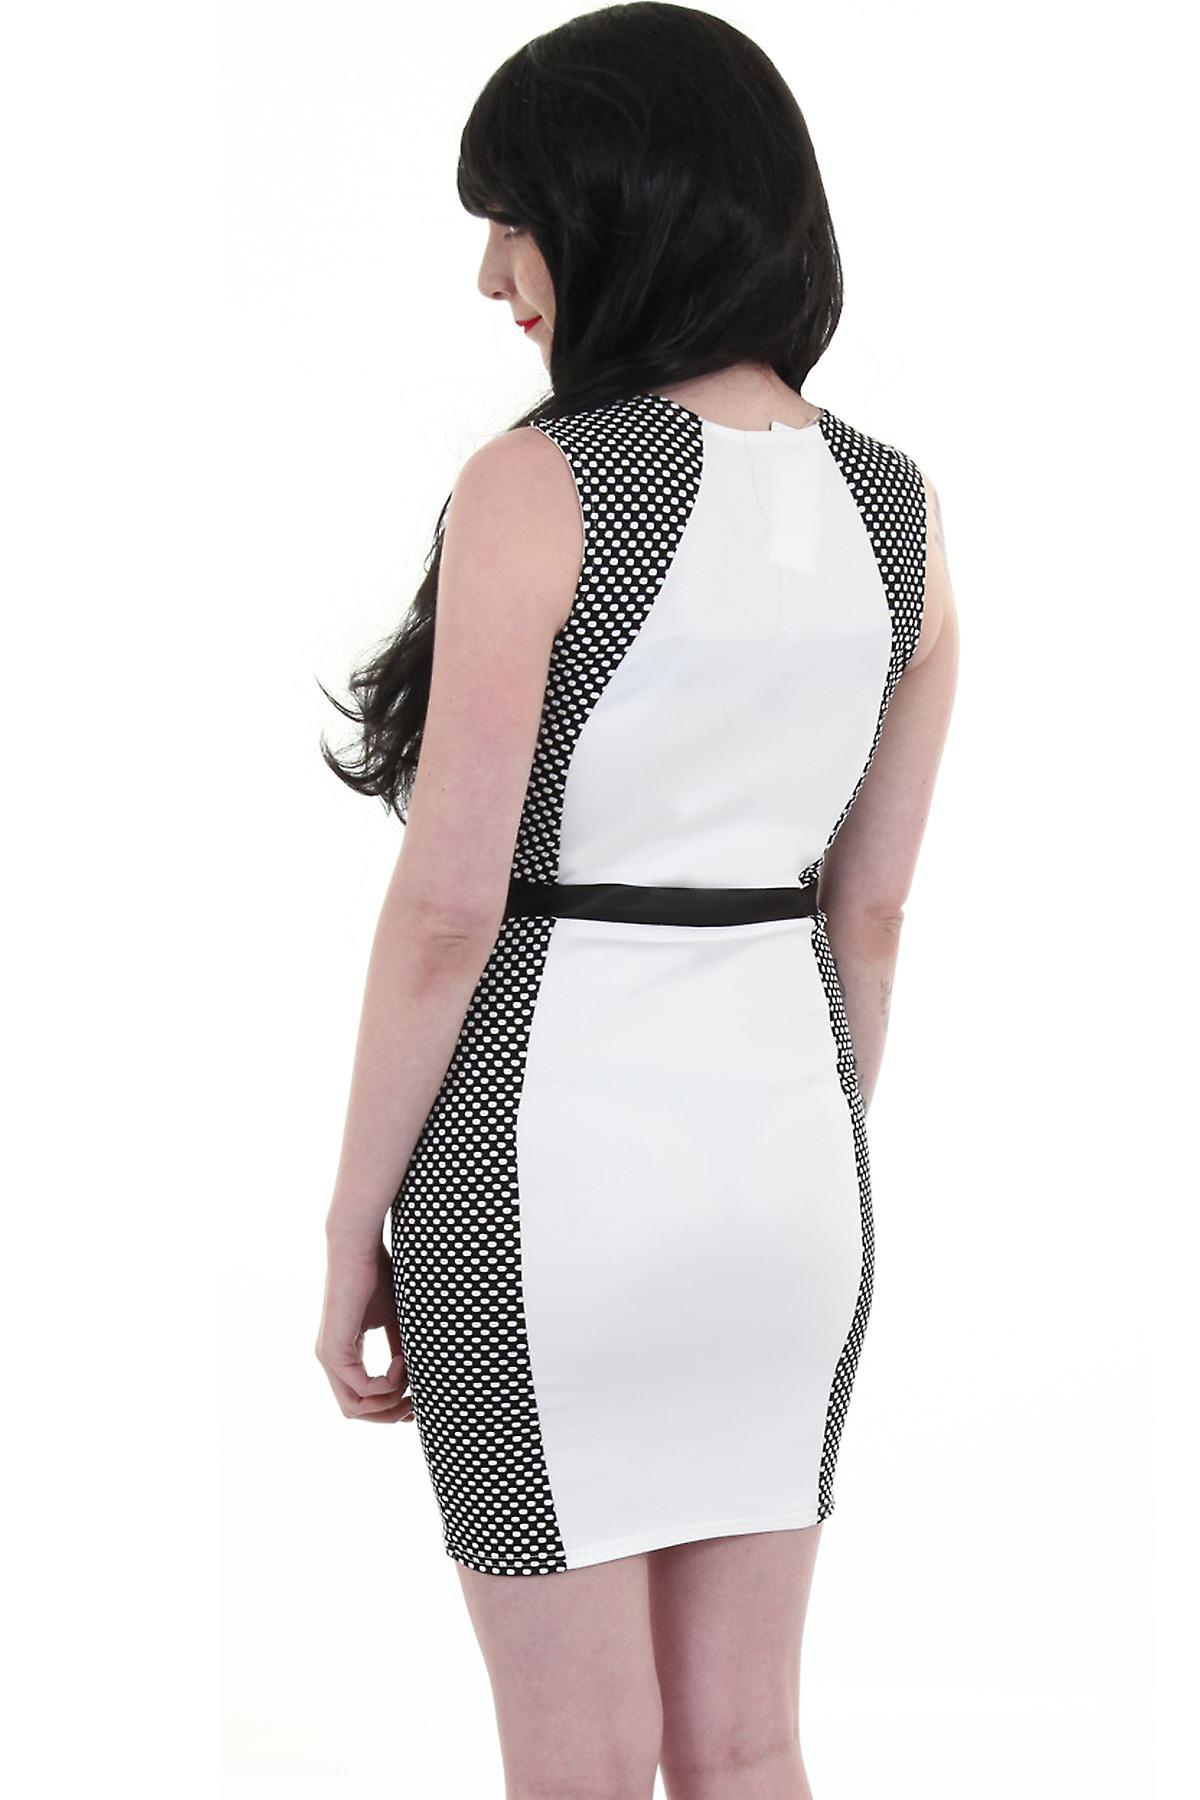 Ladies Sleeveless PVC Cross Polka Dot Contrast Women's Bodycon Dress